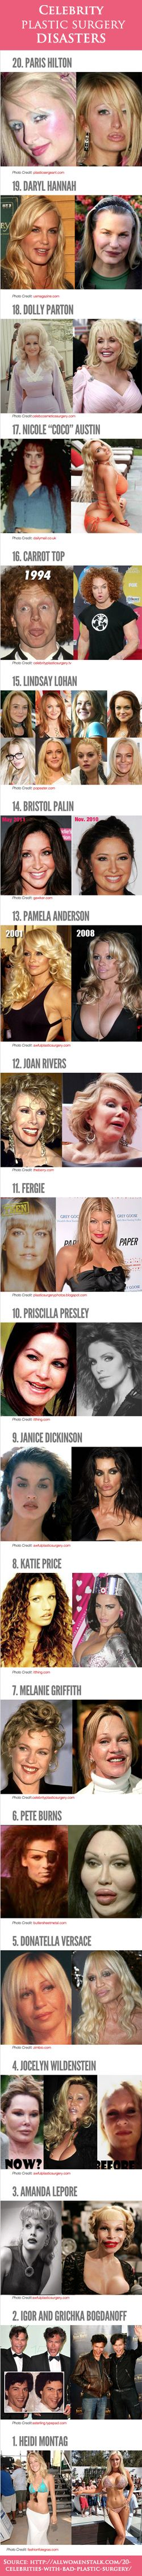 celebrity plastic surgery dont's: